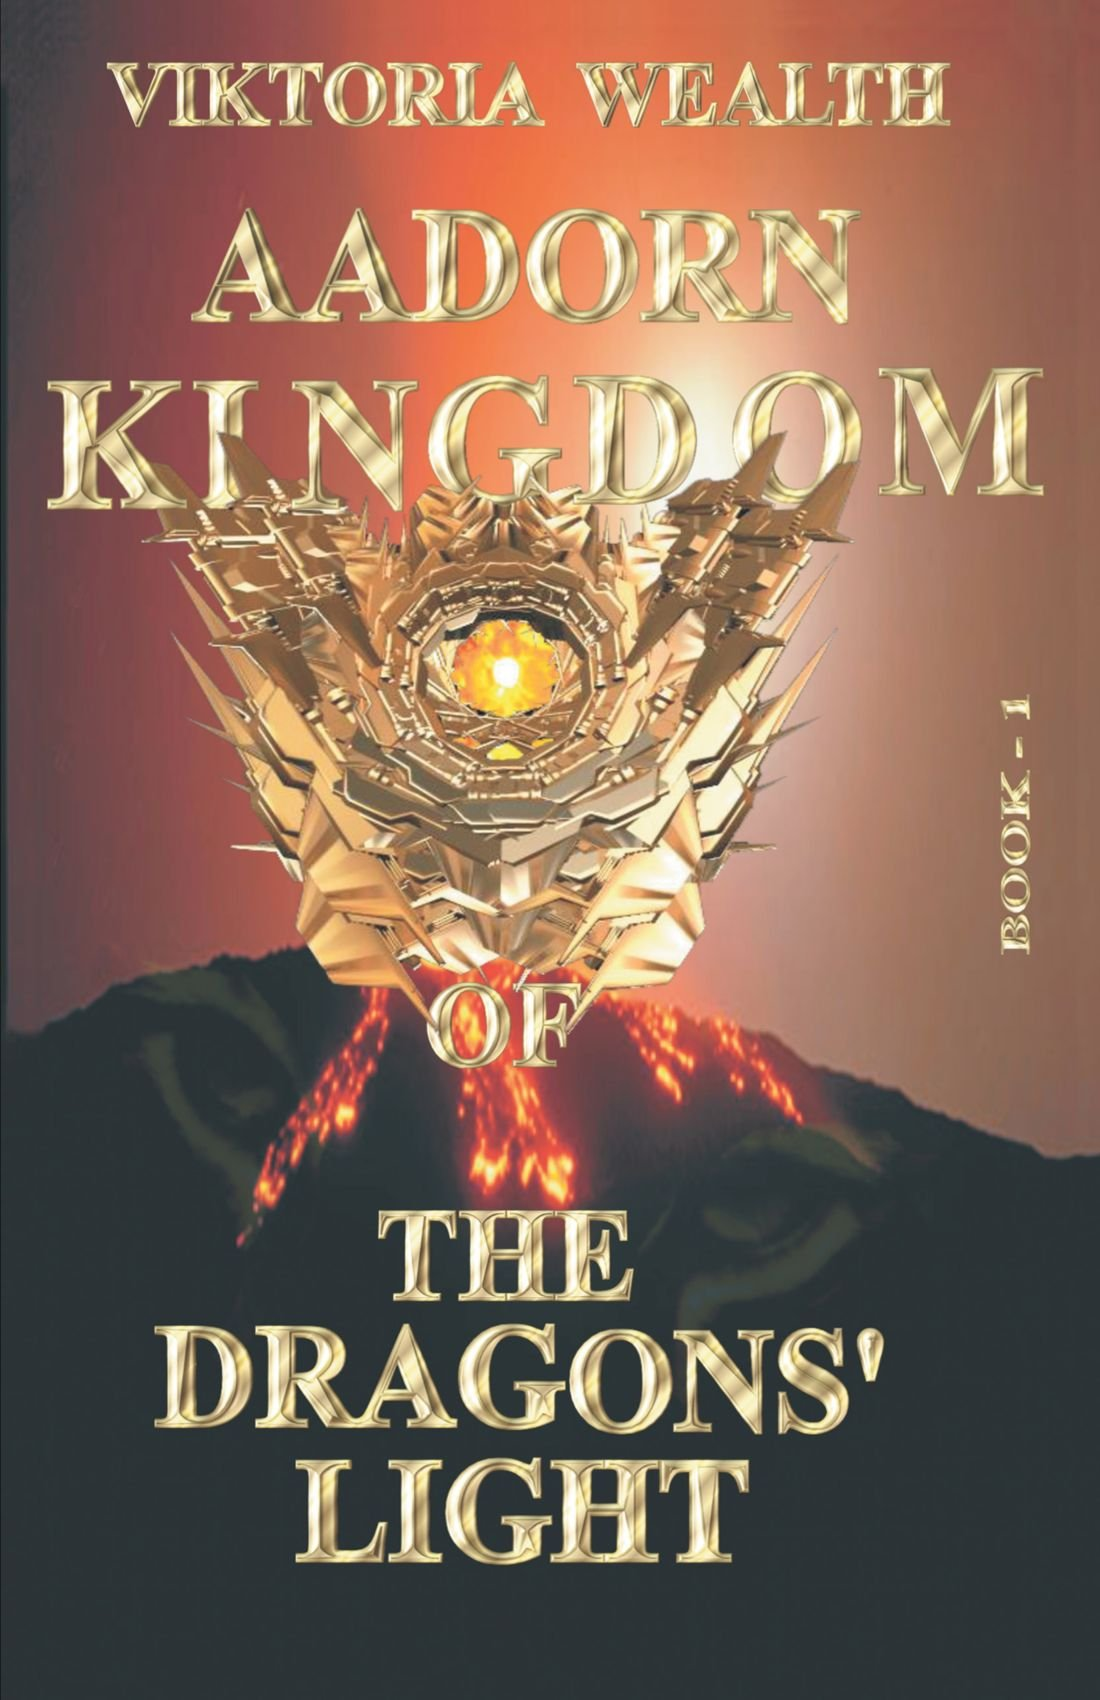 AADORN KINGDOM OF THE DRAGONS' LIGHT: Book-I PDF